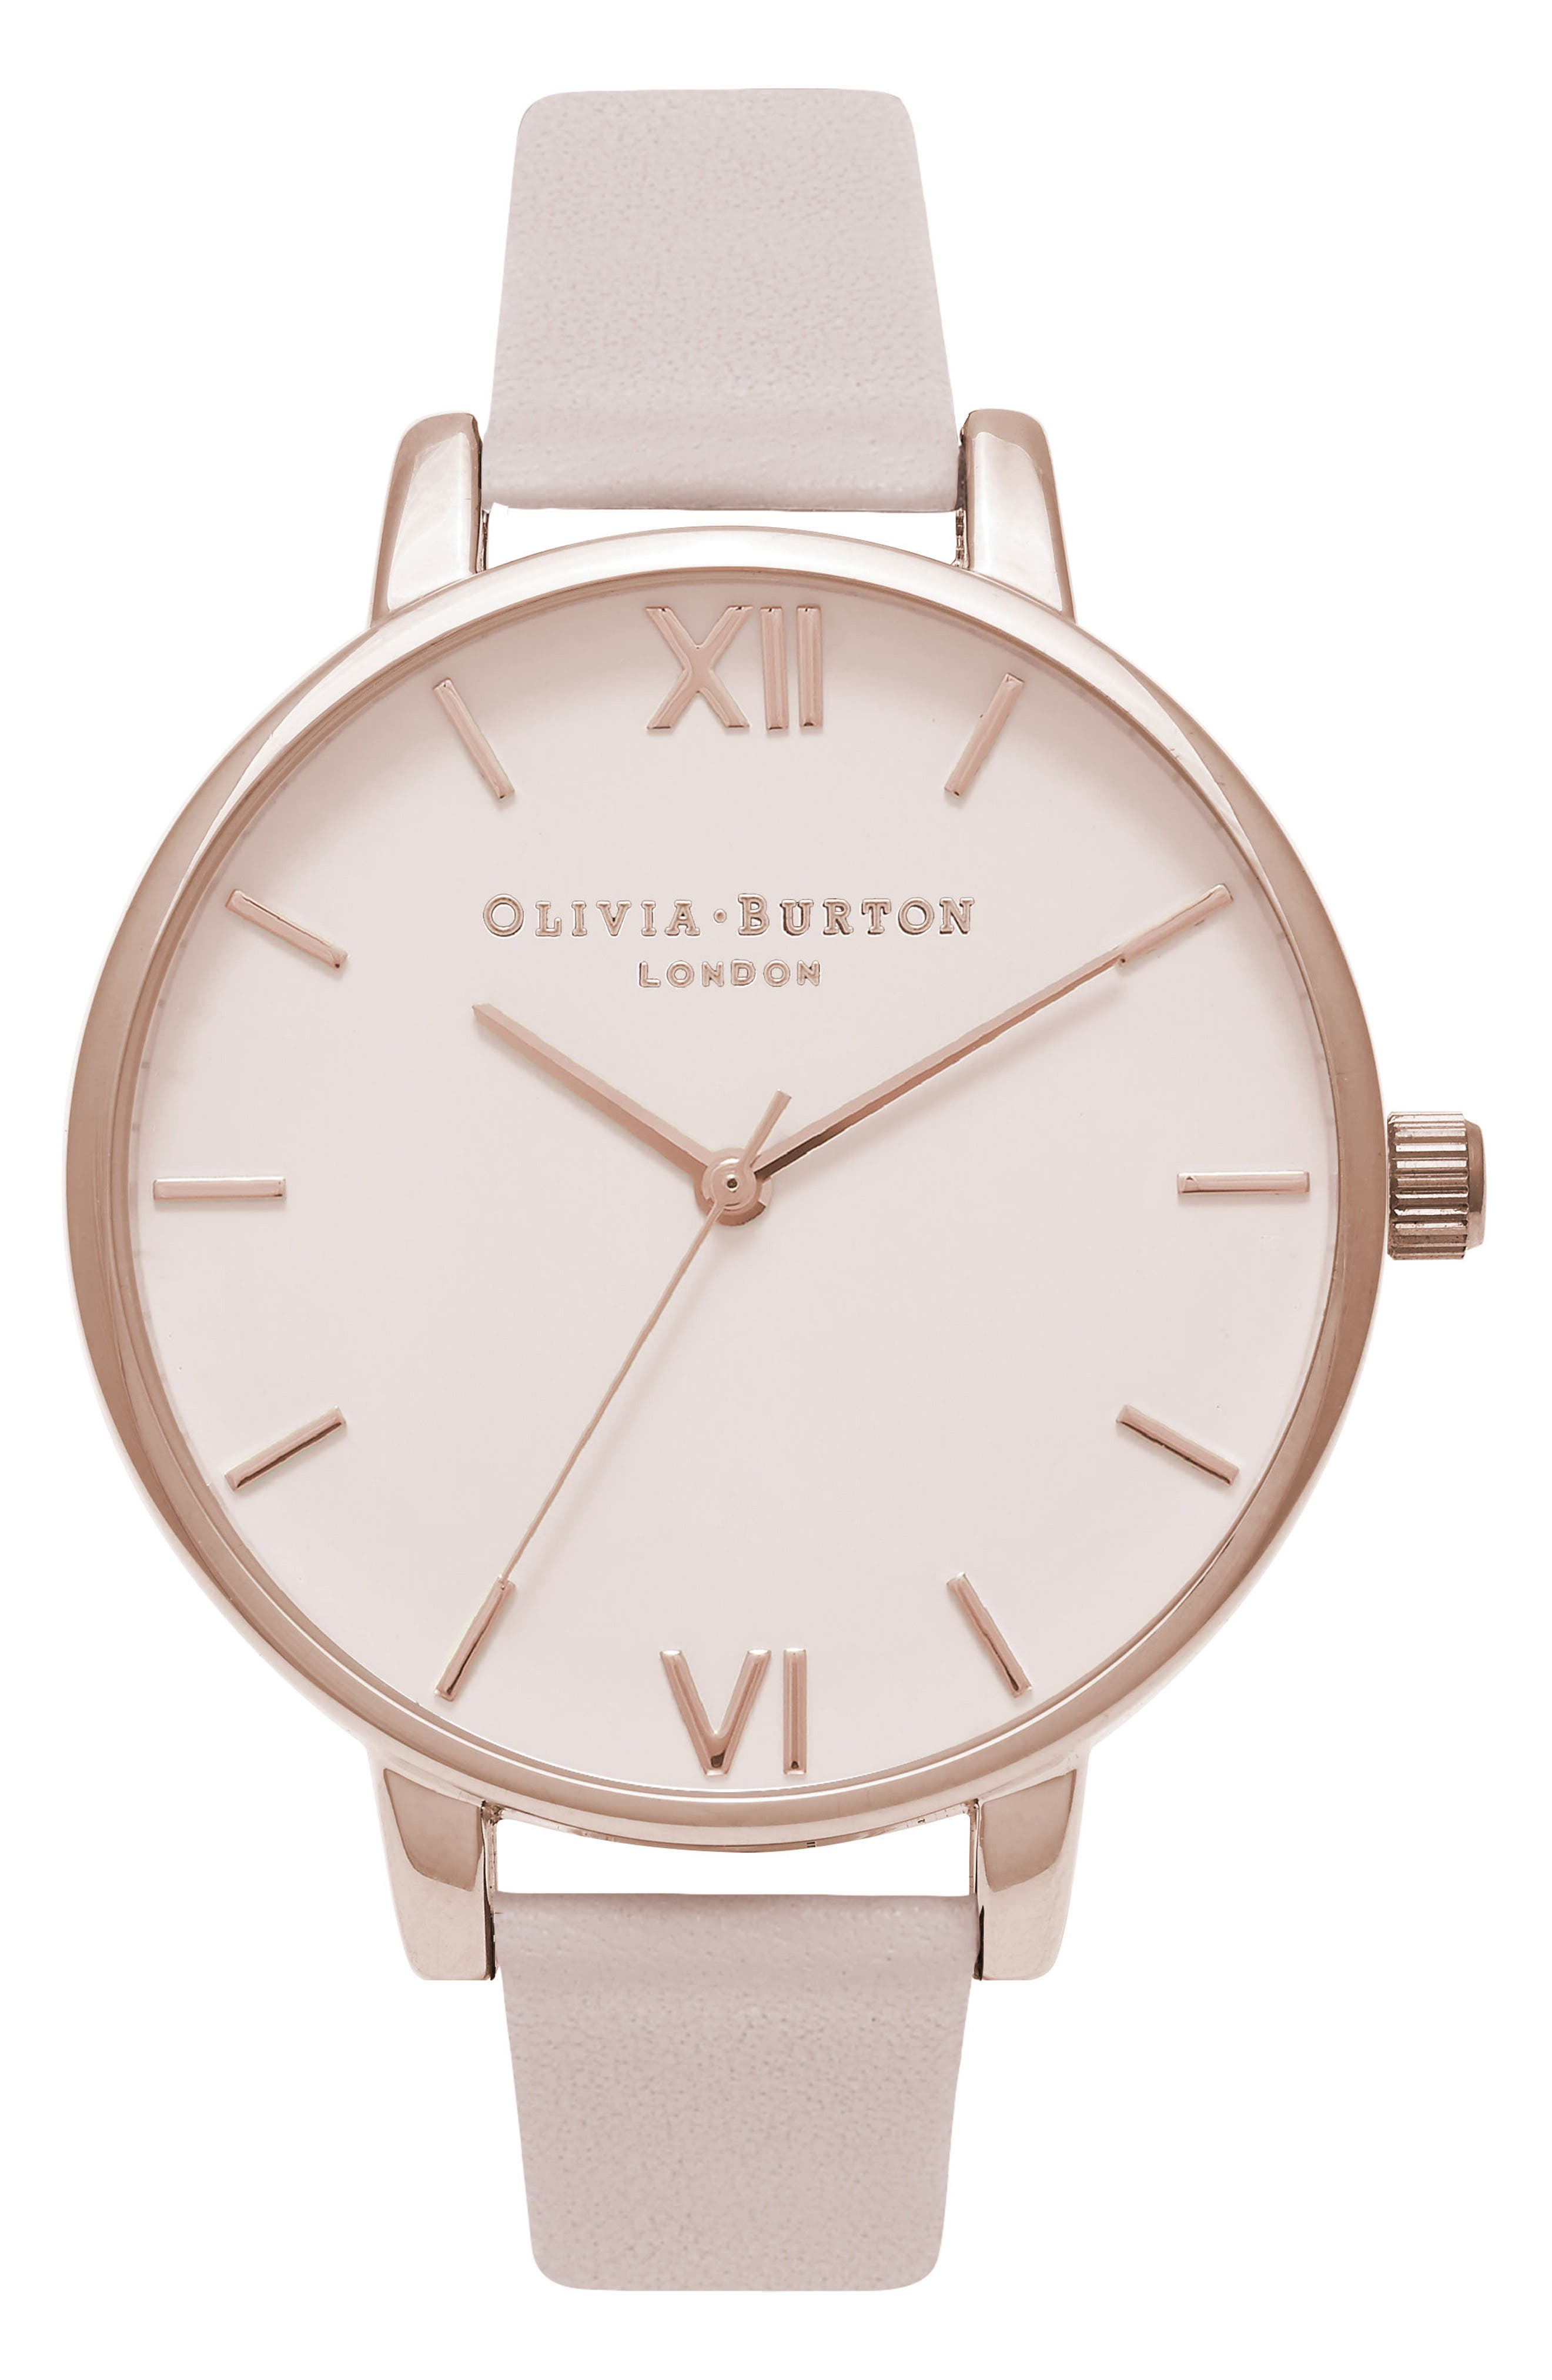 Begin to Blush Leather Strap Watch, 38mm,                             Main thumbnail 1, color,                             BLUSH/ ROSE GOLD